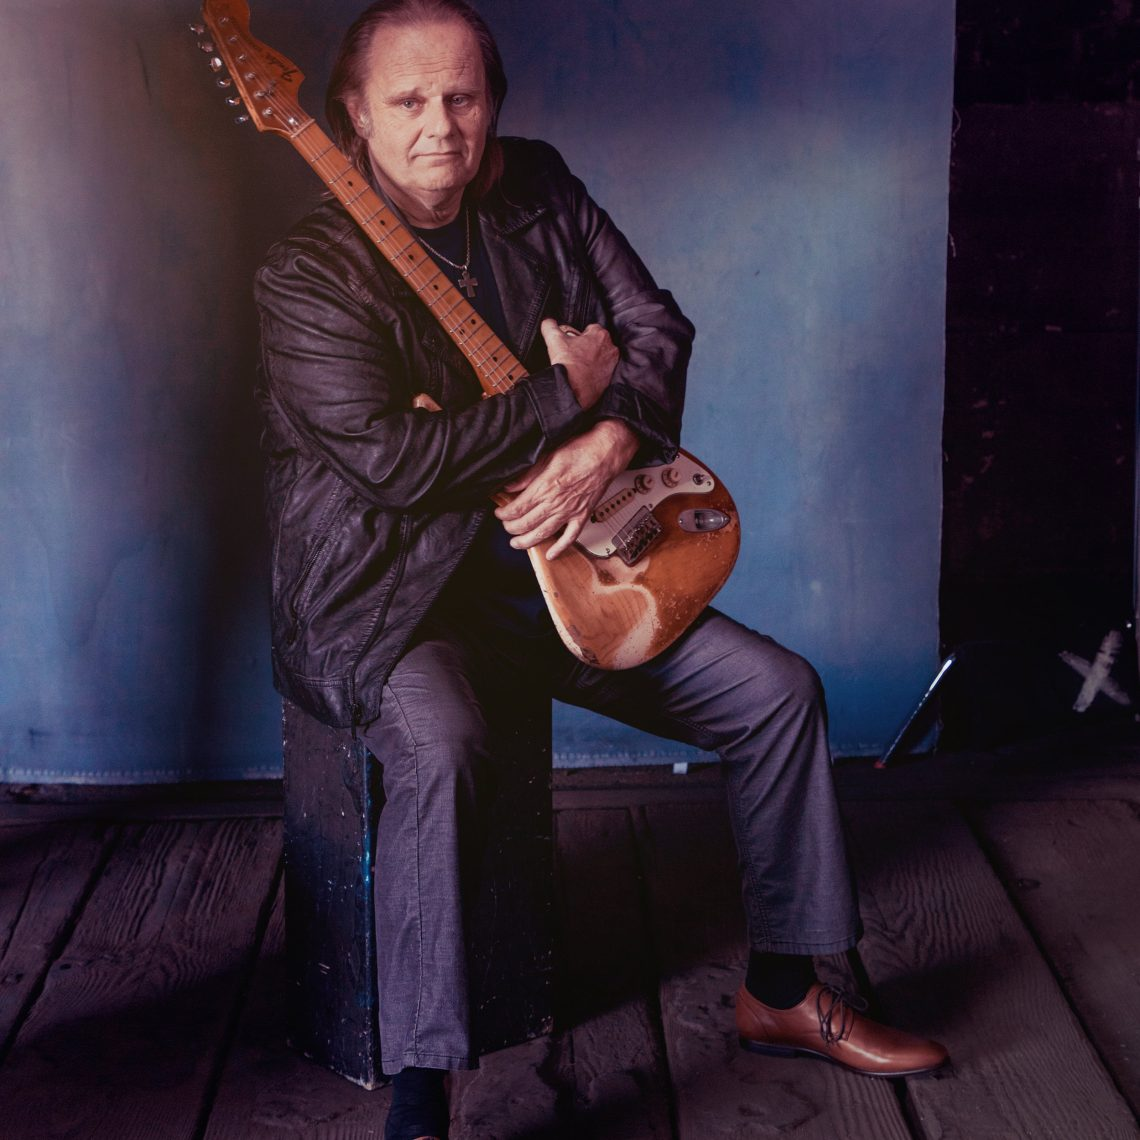 Walter Trout Release Video For 'We're All In This Together' feat. Joe Bonamassa